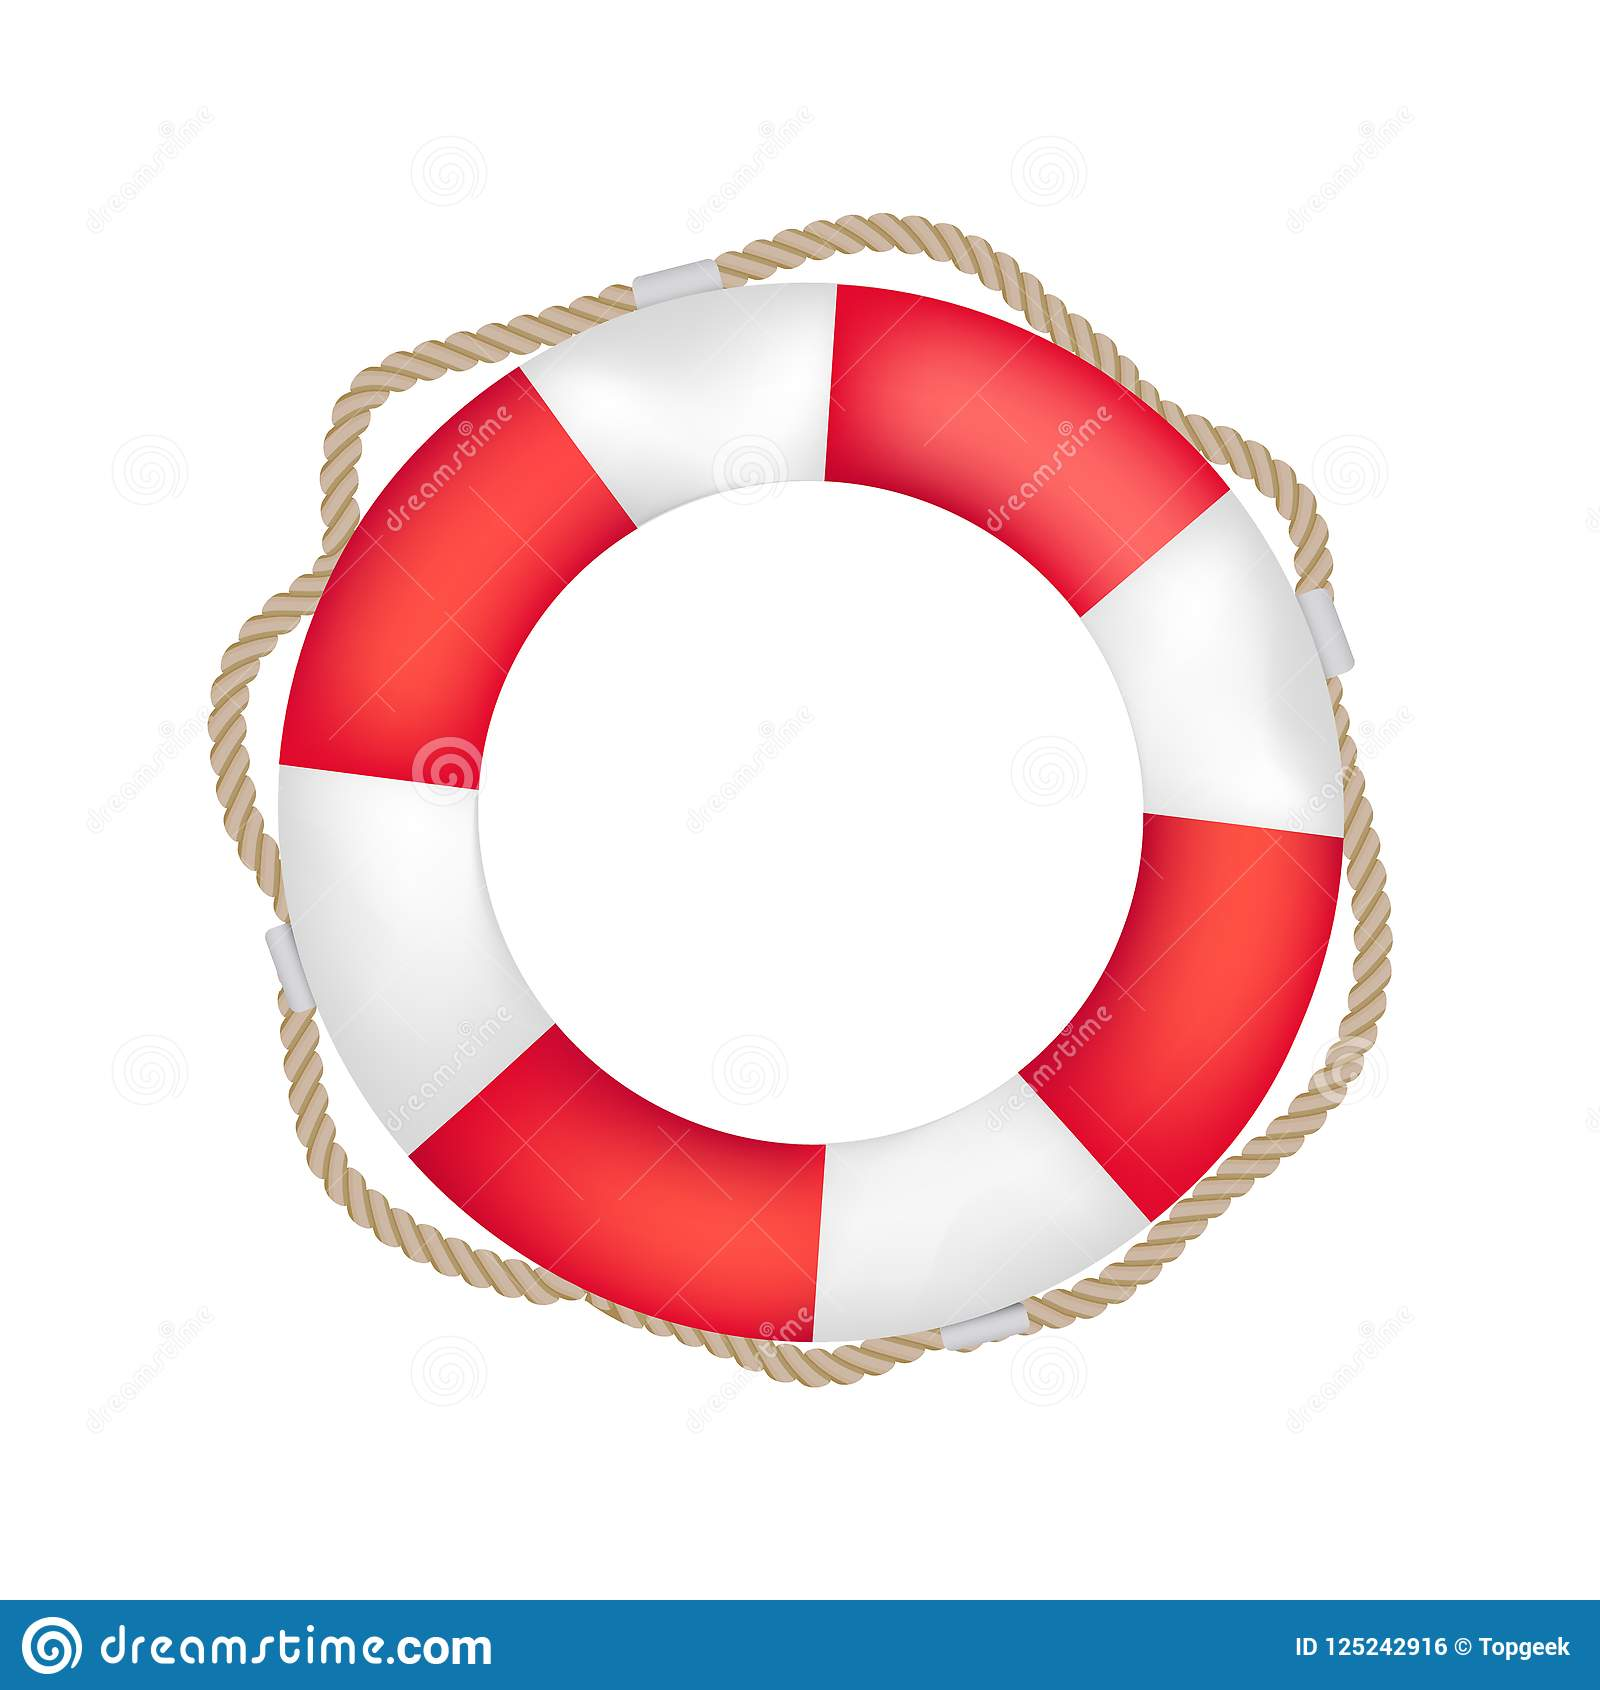 3f366151f4d Striped red and white lifebuoy with rope around. Equipment for safety in  water. Standard inflatable ring